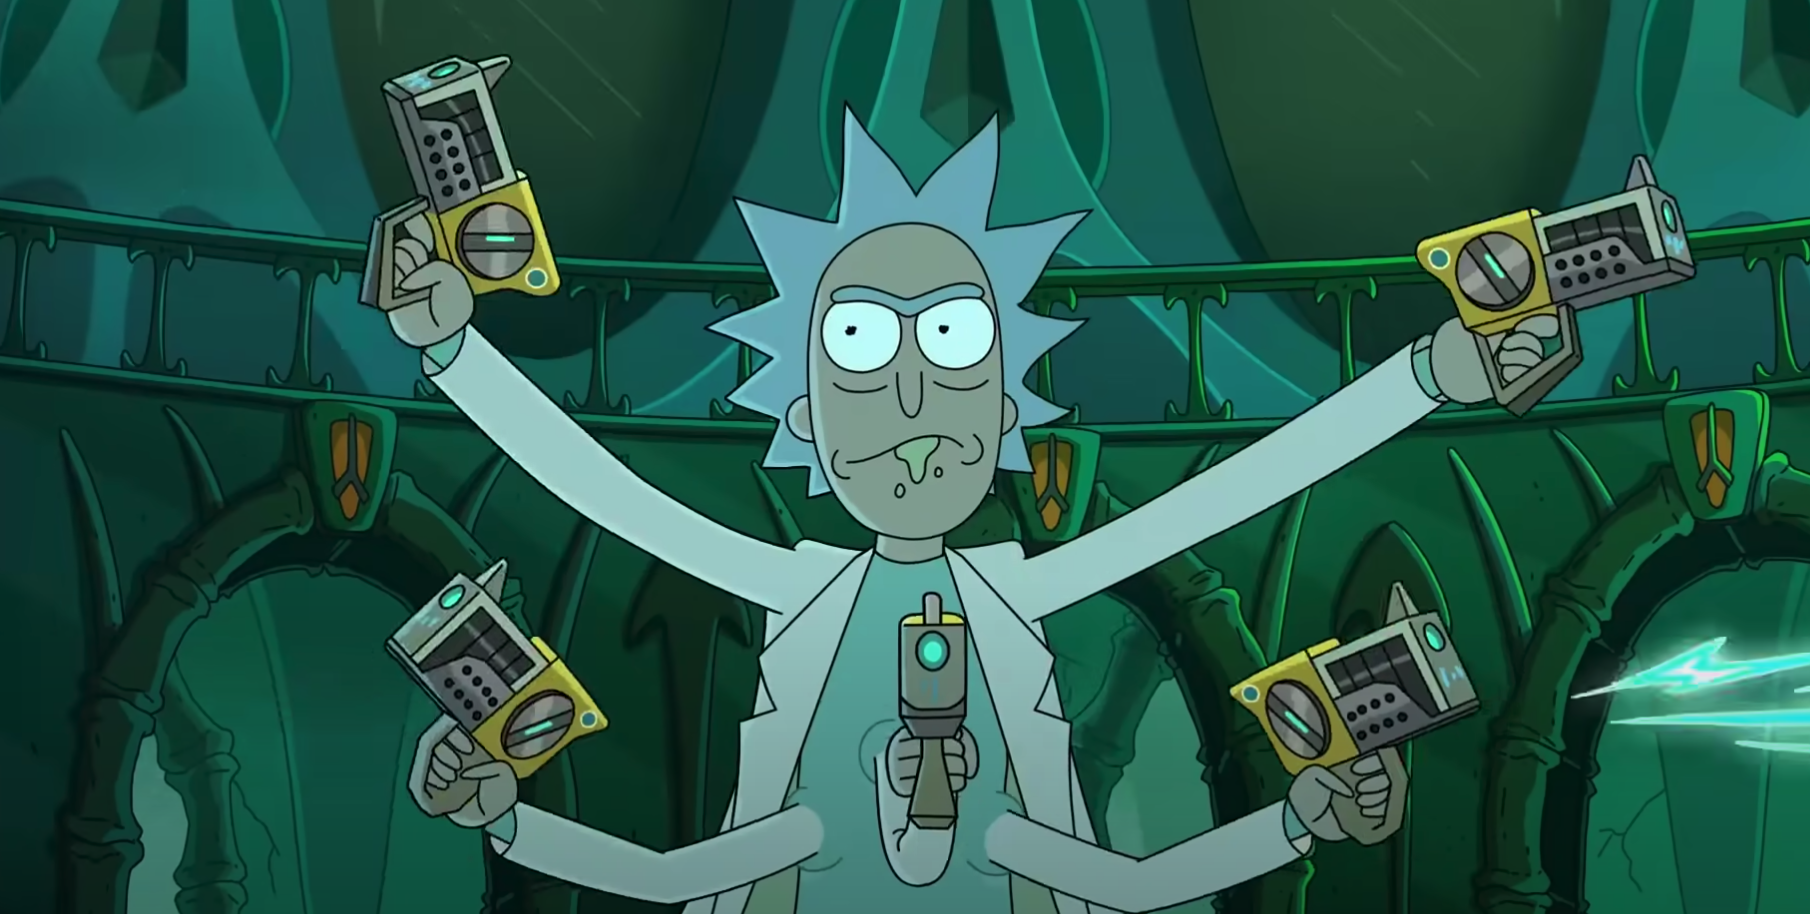 rick-and-morty-never-ricking-morty